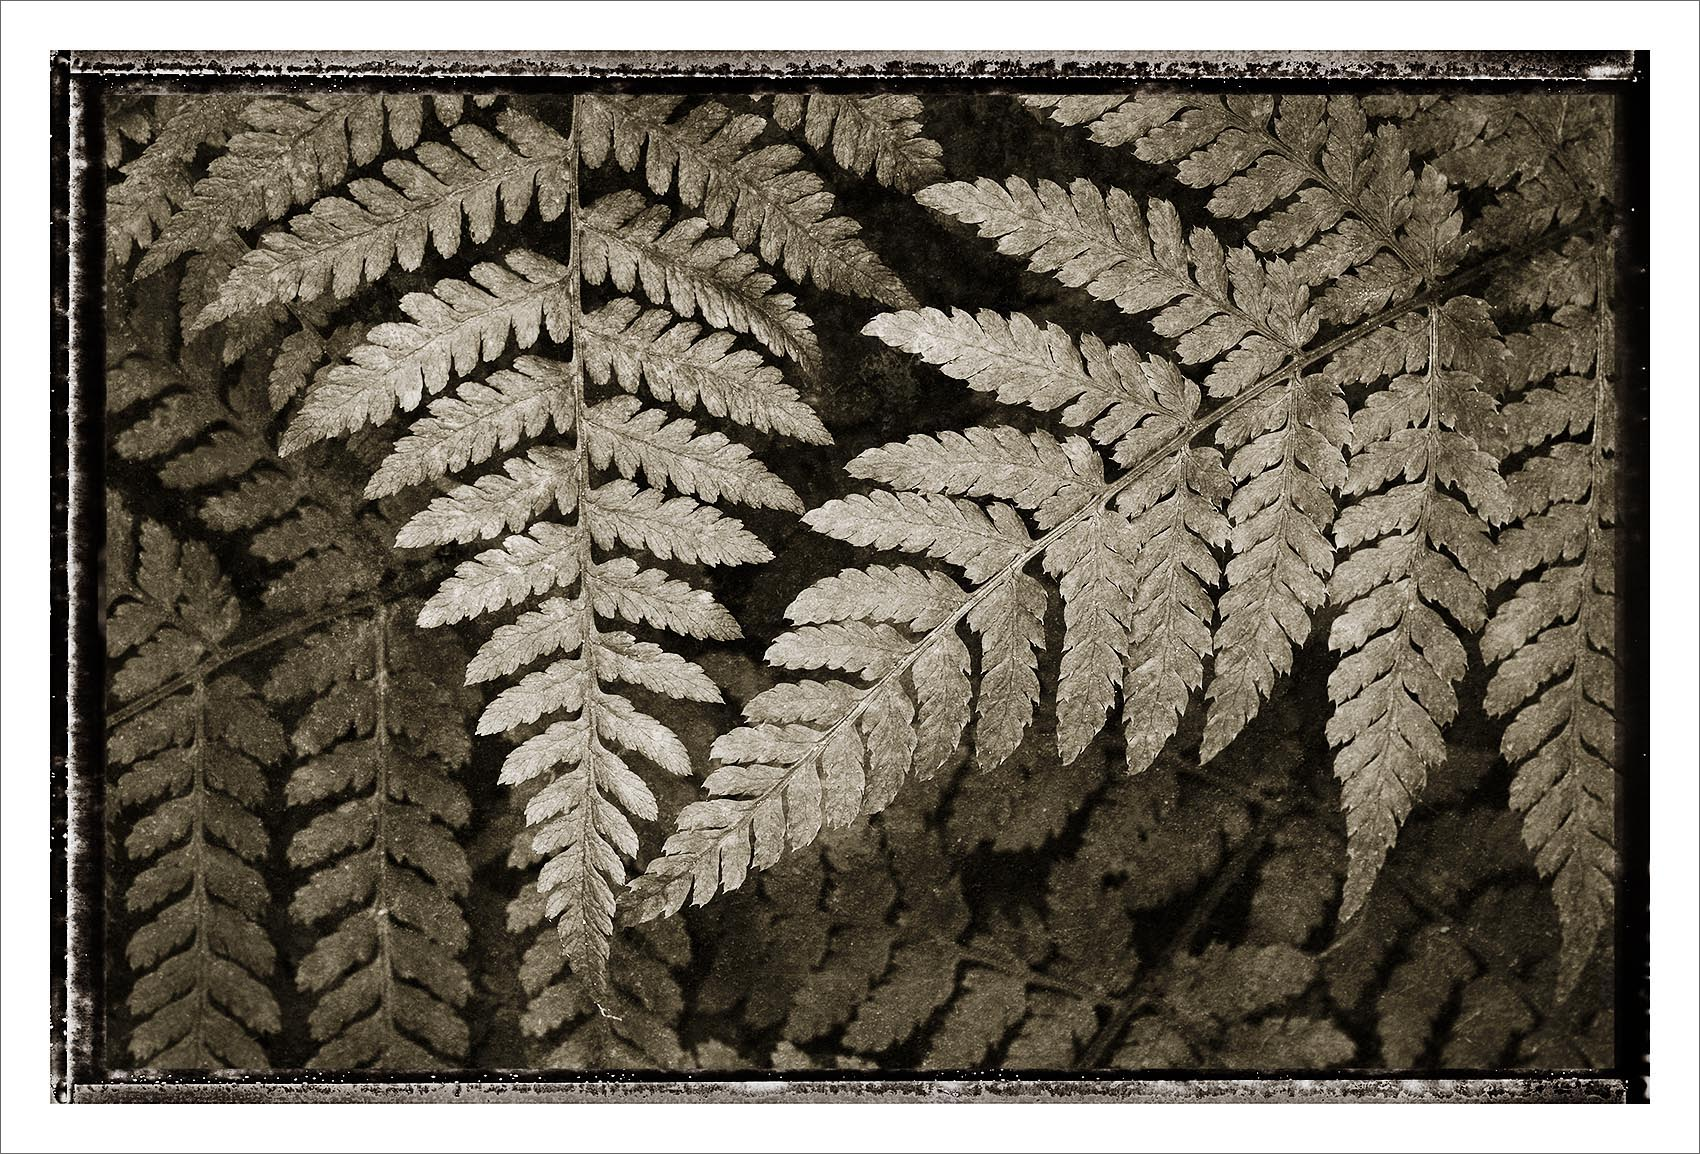 Lady Fern Lady Fern Black and White Nature Study